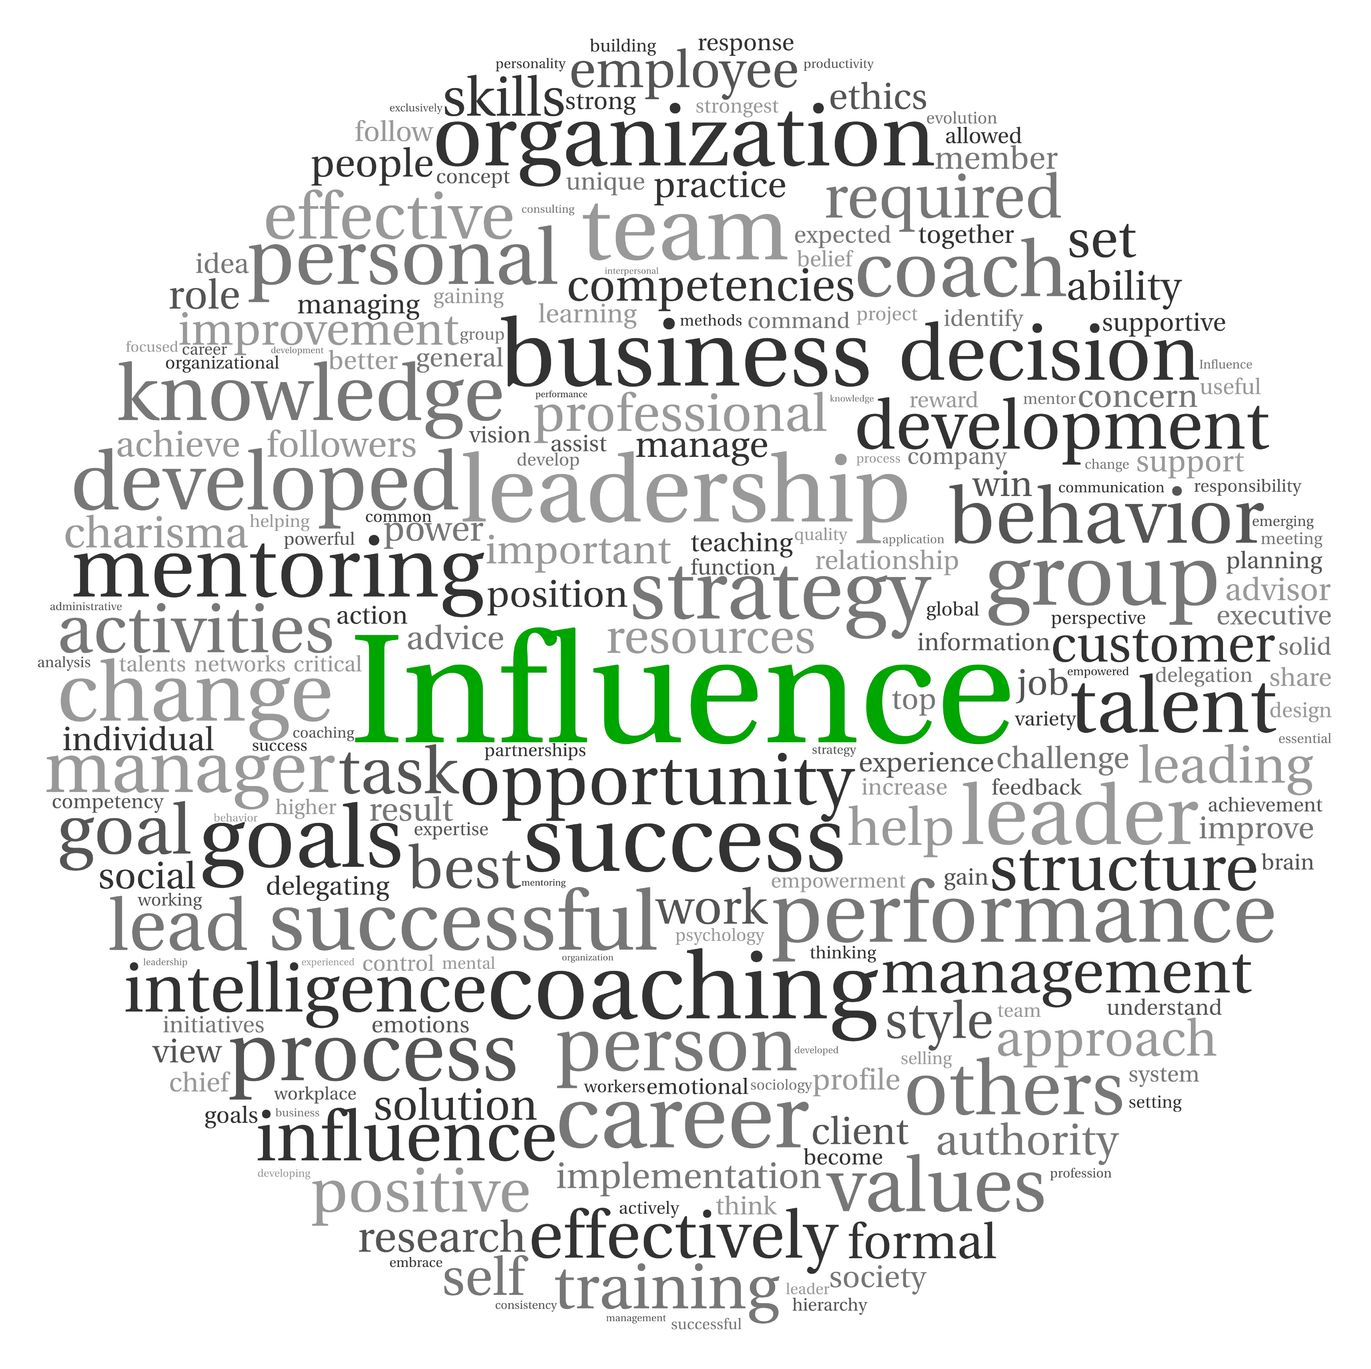 Characteristics of Influential Leaders